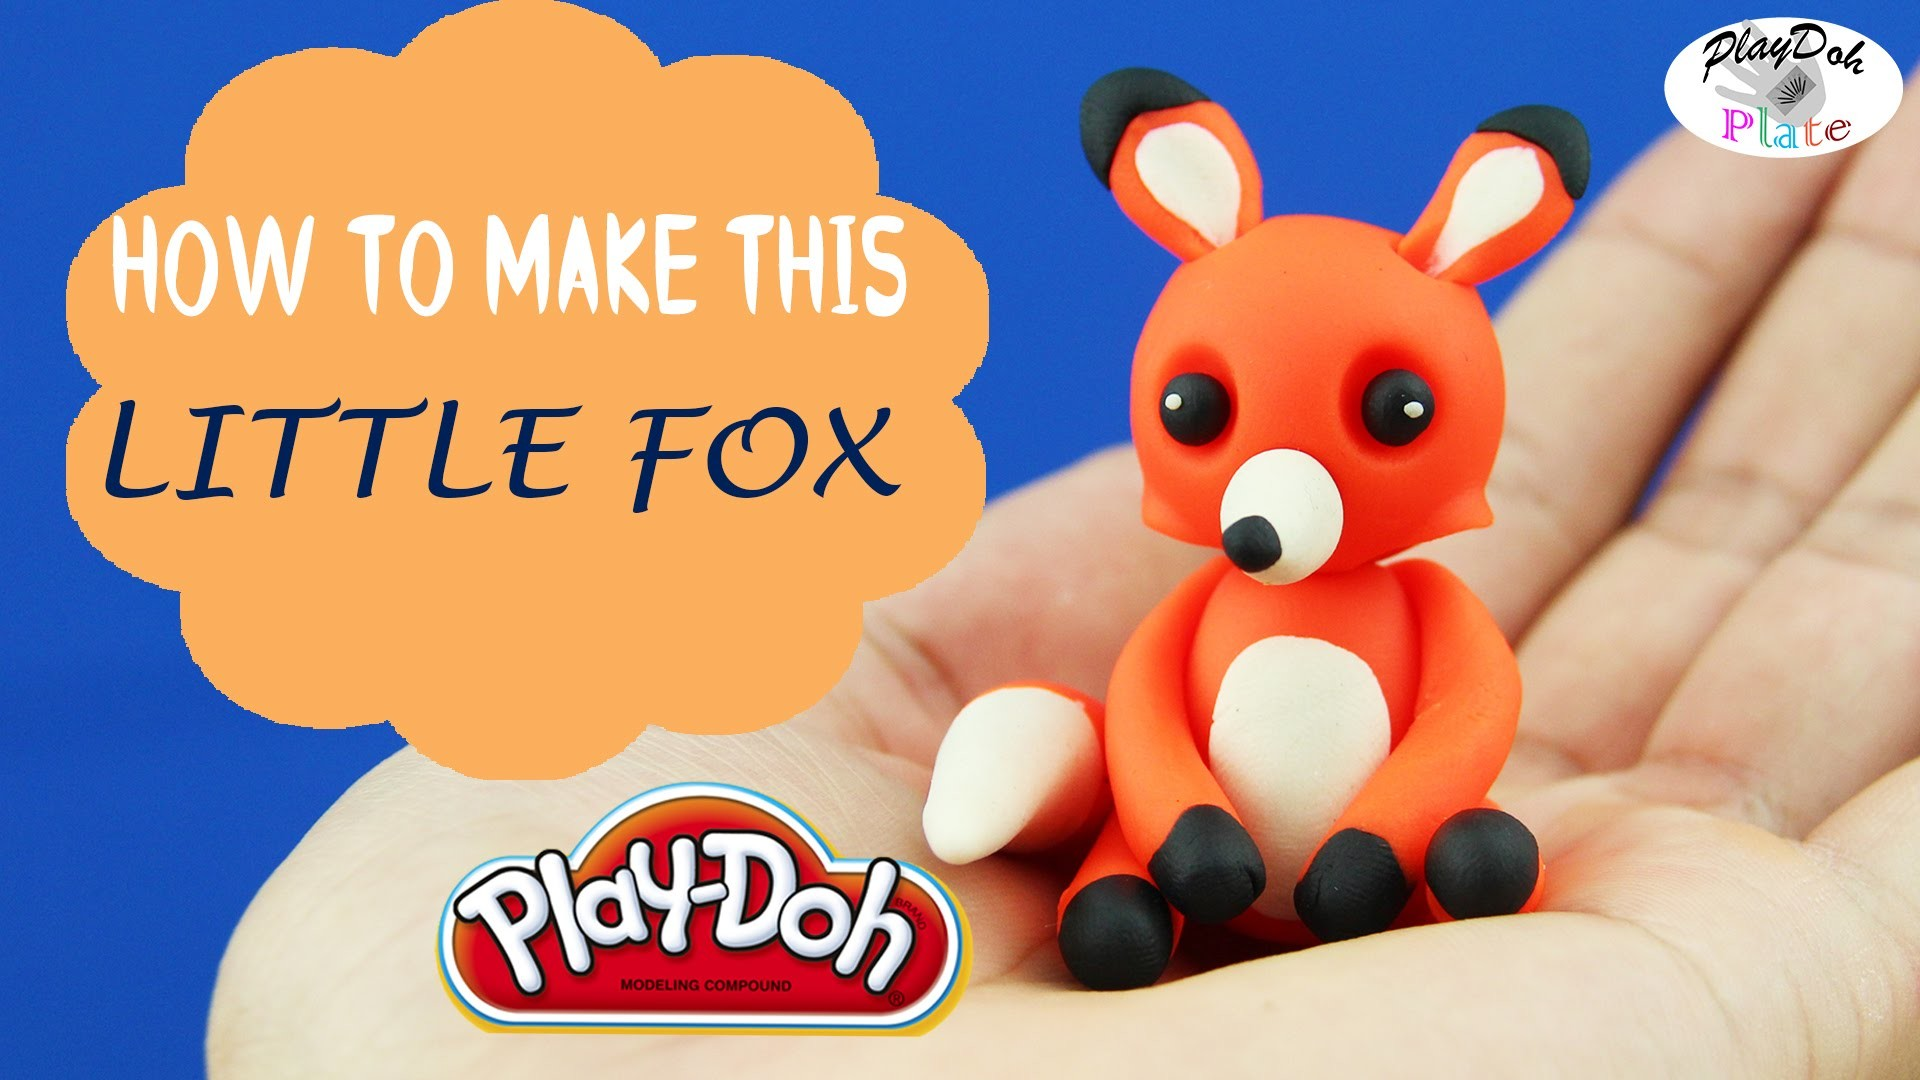 Play Doh Little Fox - Learn How to Make A Cute Little Fox With Play Doh Episode 24